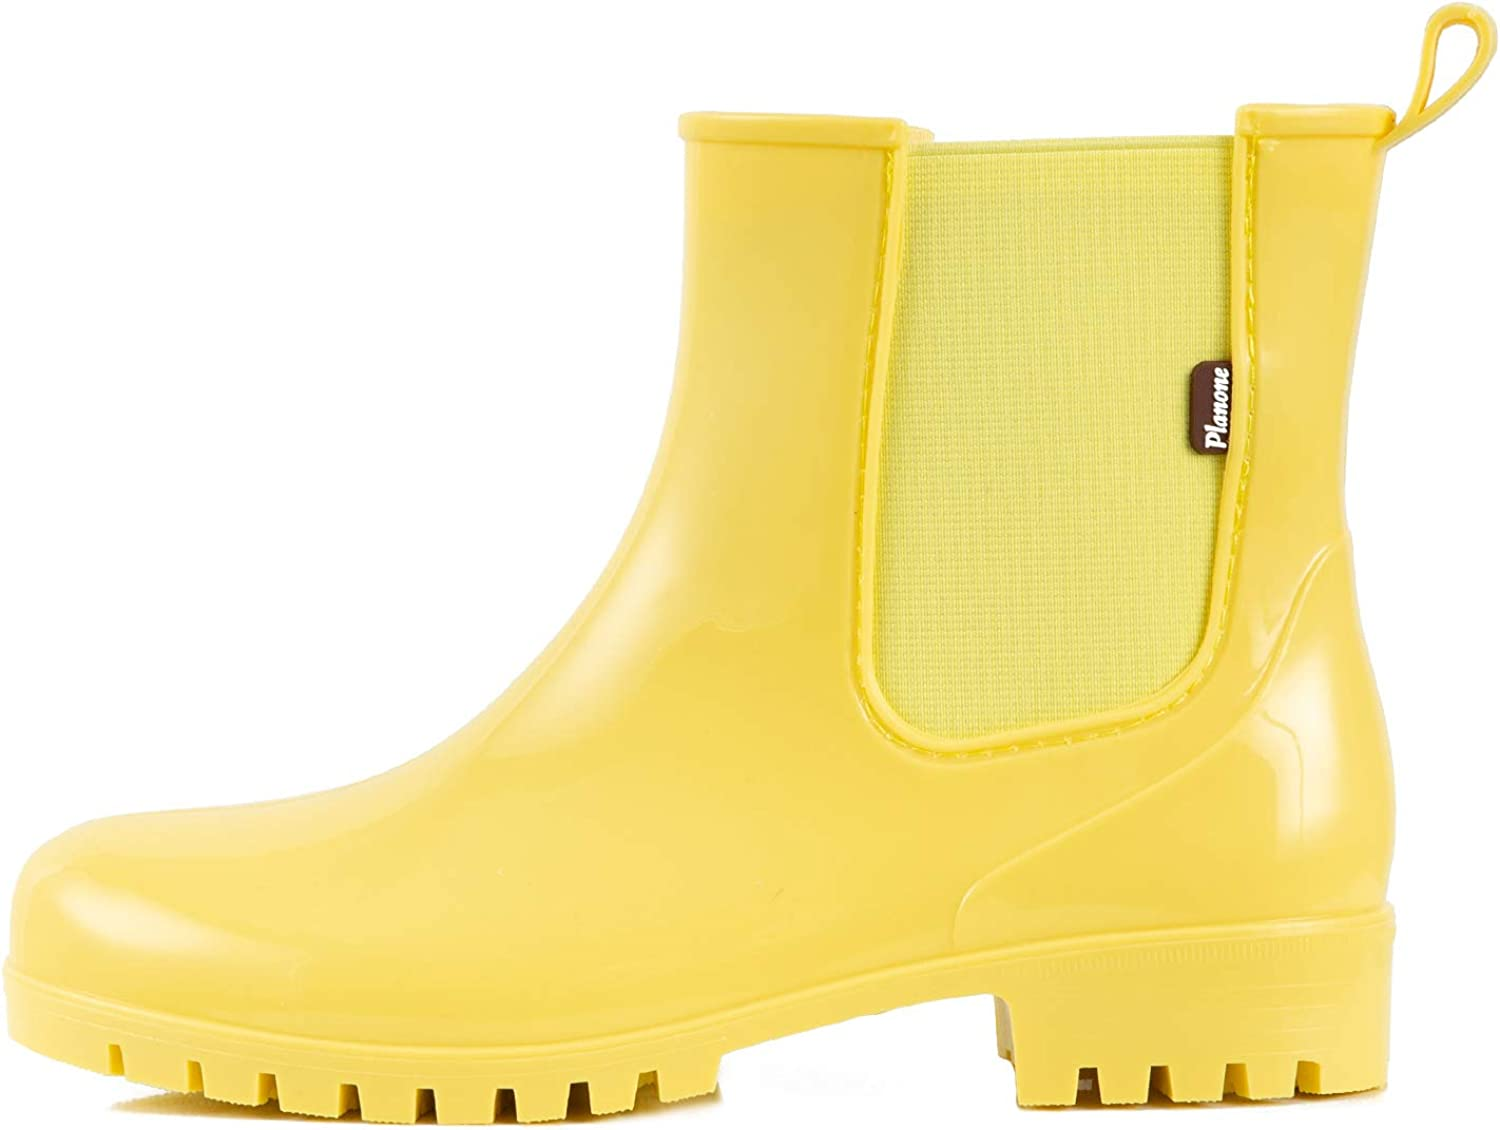 planone Short rain Boots for Women and Waterproof Garden Shoes,Anti-Slipping White Chelsea Rainboots for Ladies with Comfortable Insoles,Stylish Light Ankle rain Shoes and Outdoor Work Shoes